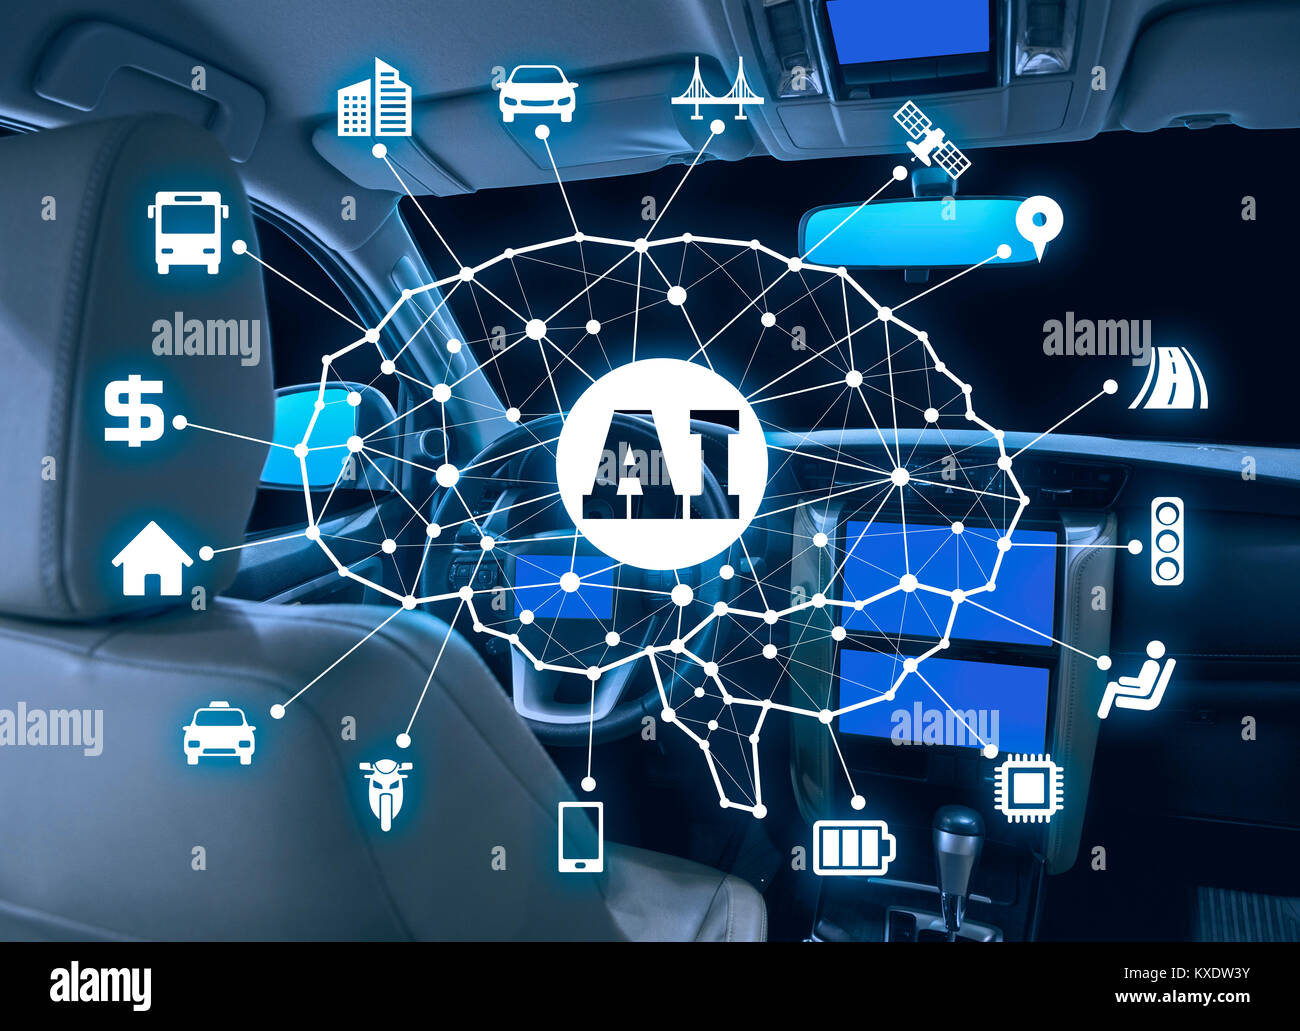 autonomous car with AI(Artificial Intelligence) concept. Stock Photo